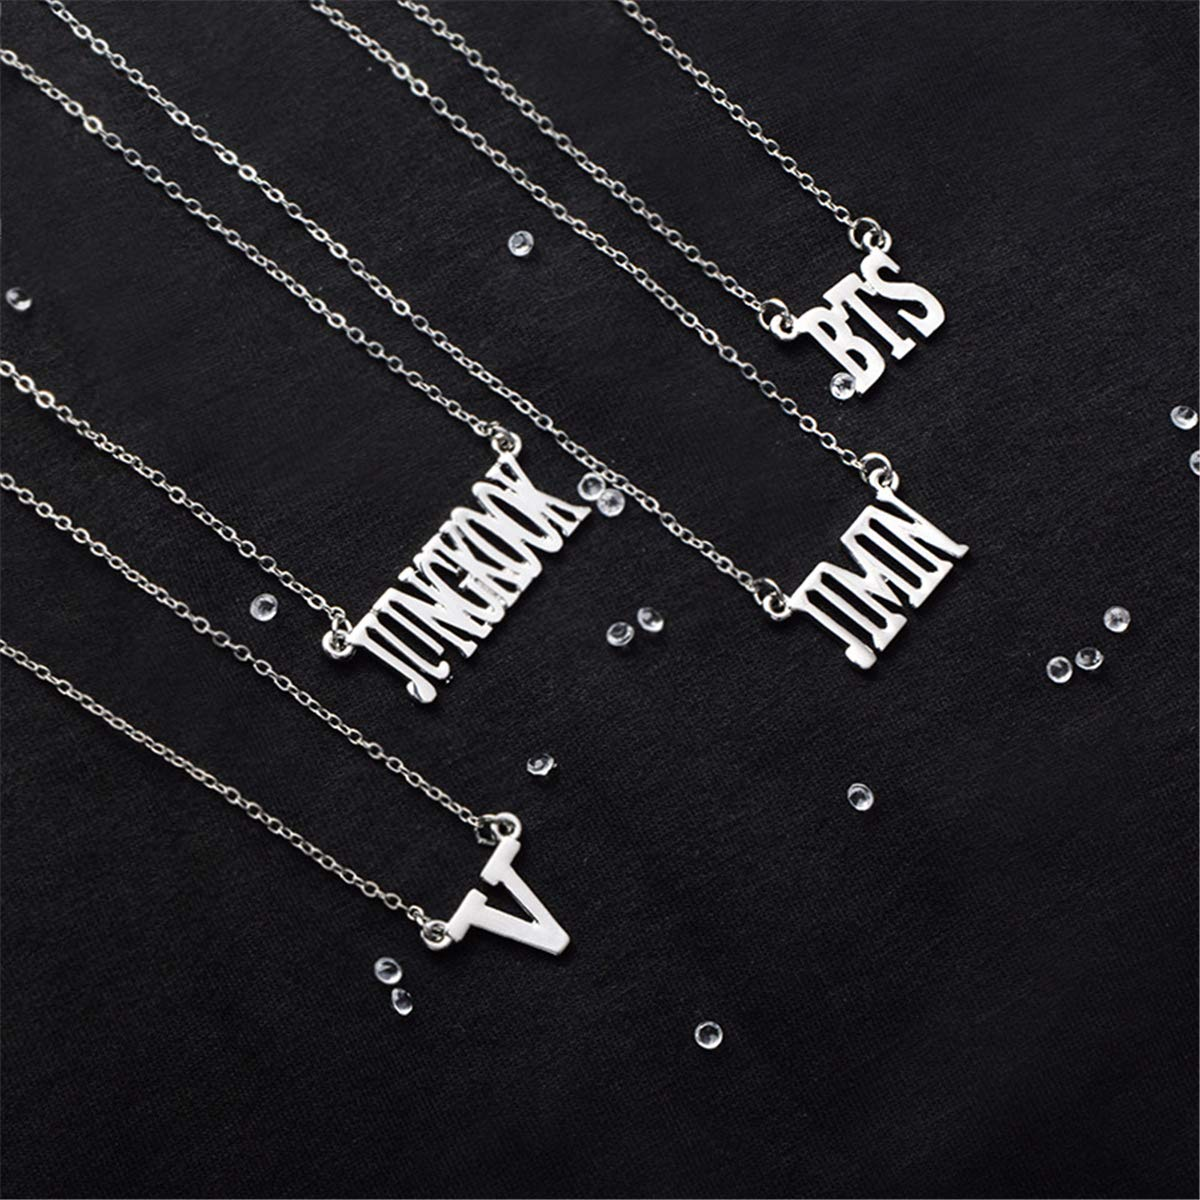 SIMYJOY BTS Women Personality Necklace Girls Letter Pendant Clavicle Chain Nice Gift